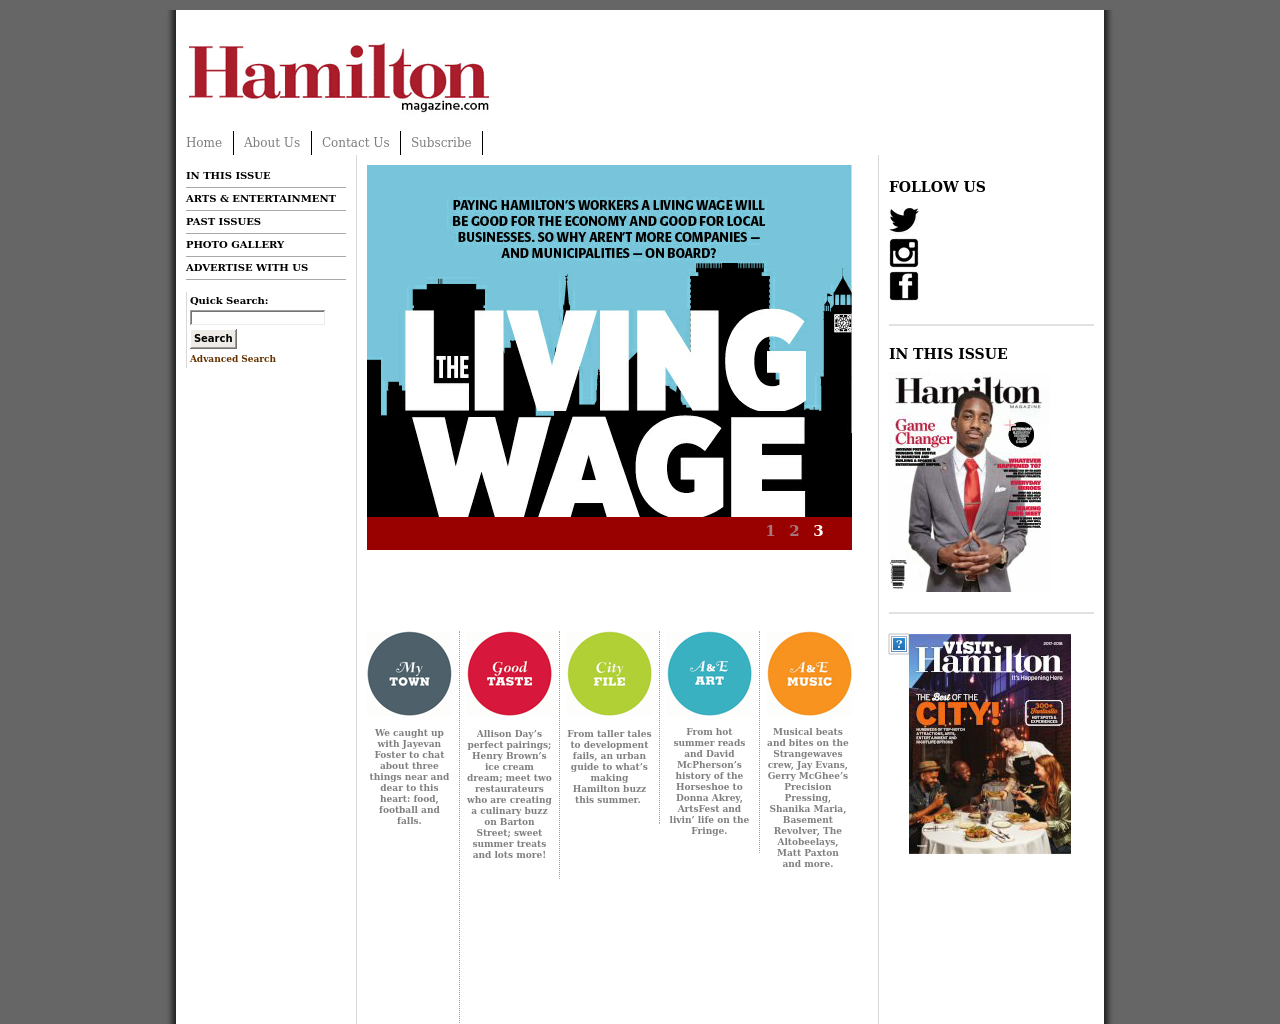 Hamilton-magazine.com-Advertising-Reviews-Pricing